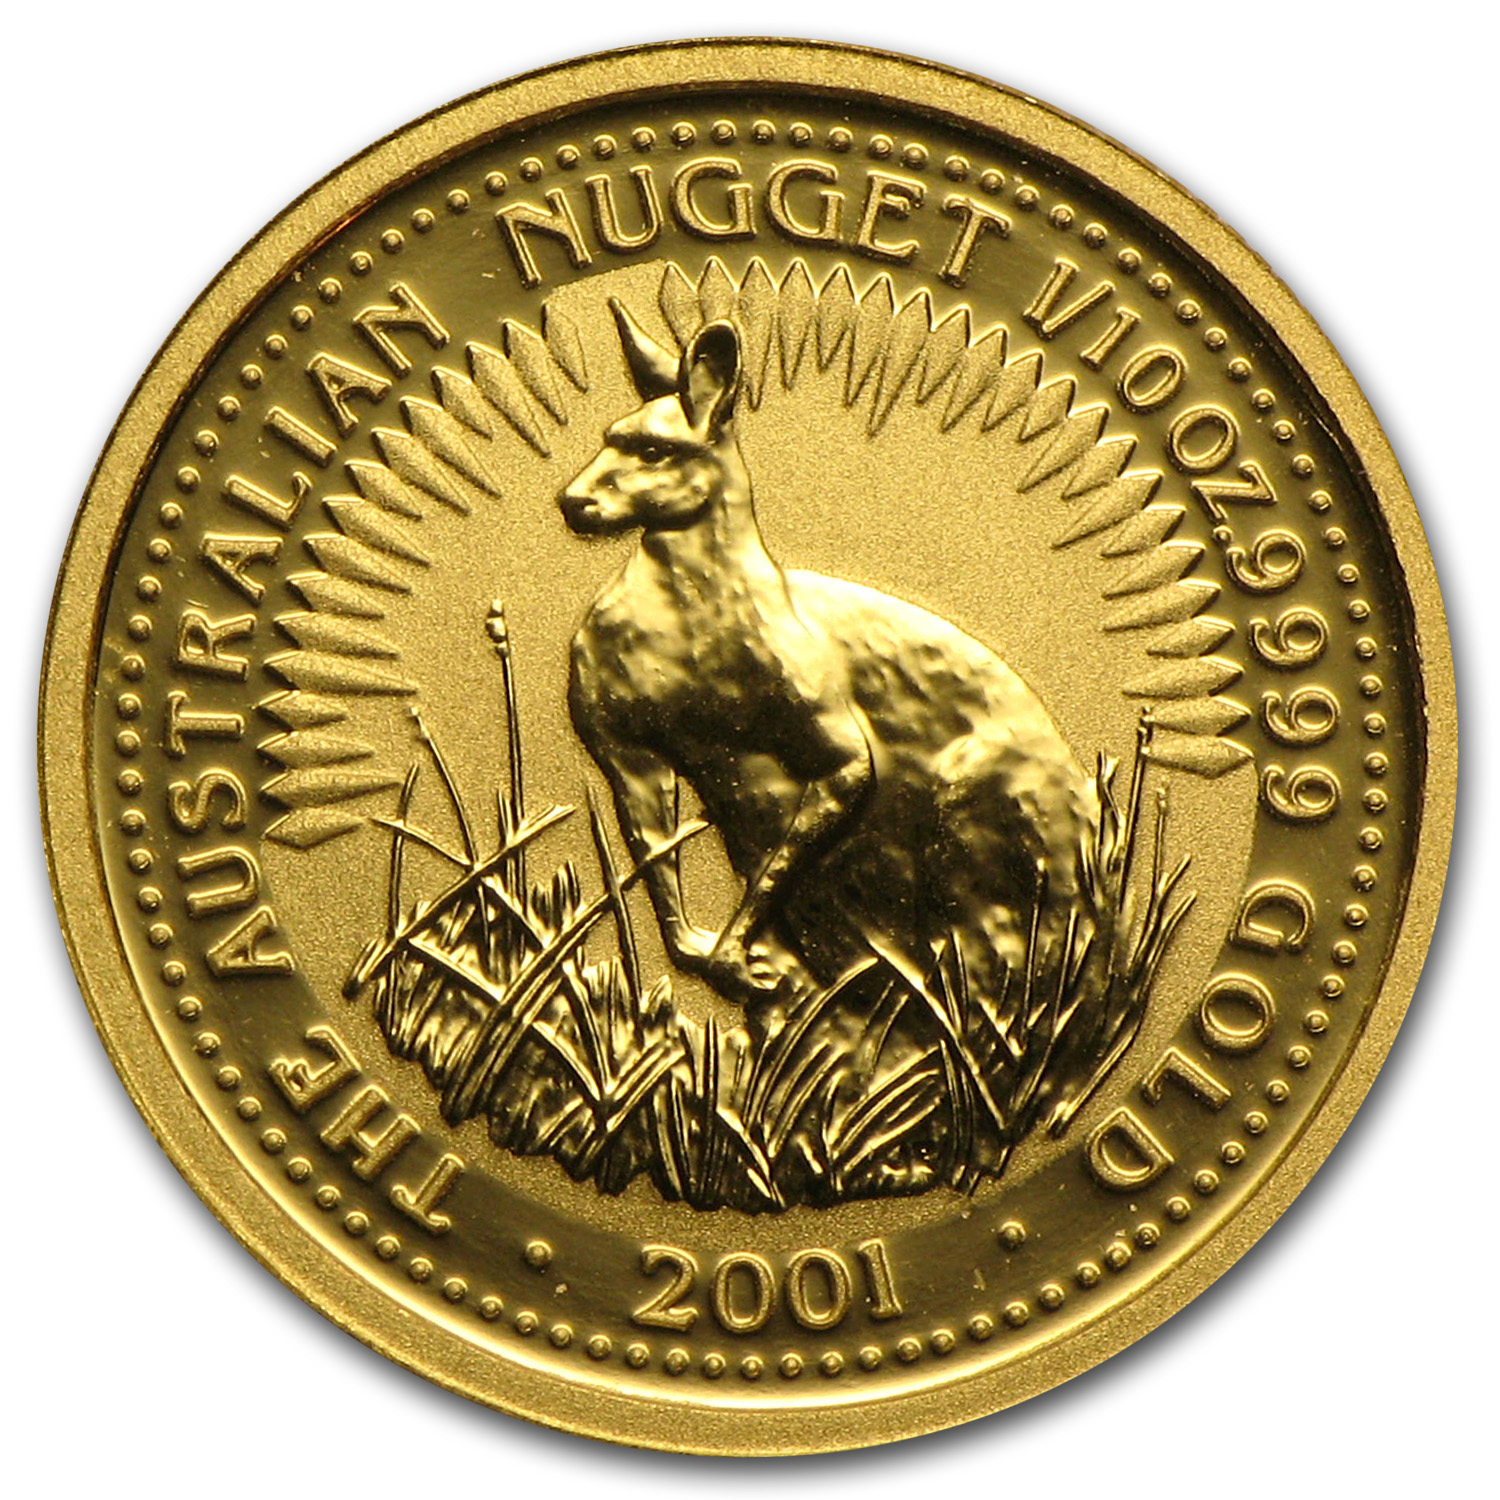 2001 1/10 oz Australian Gold Nugget